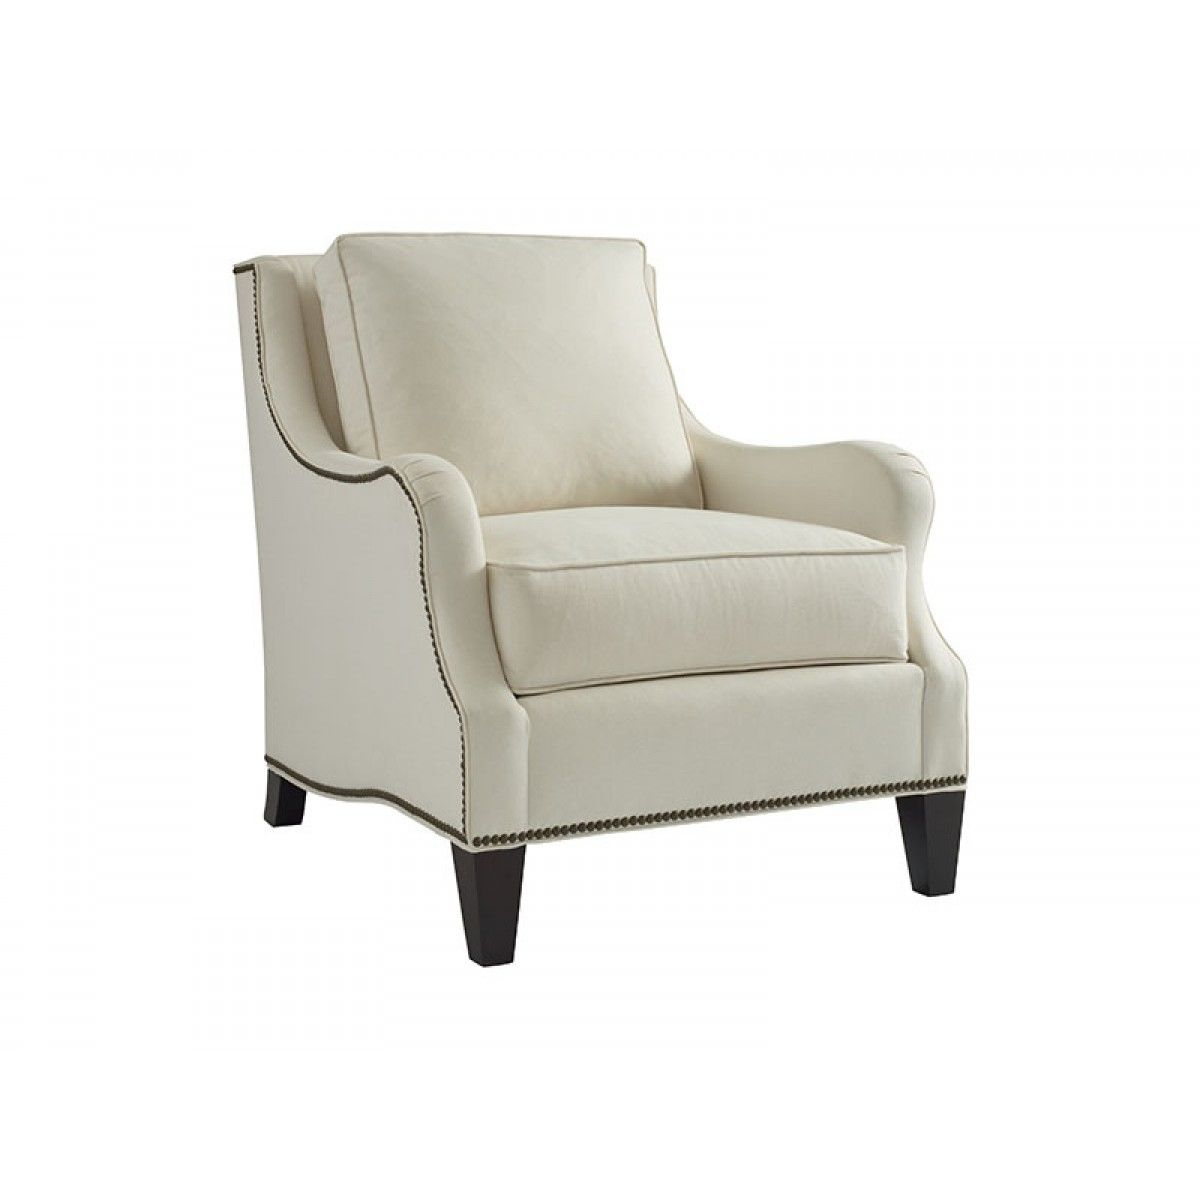 Thomasville Upholstery/leather Aiden Chair | Furniture | Pinterest Regarding Aidan Ii Swivel Accent Chairs (Photo 10 of 20)